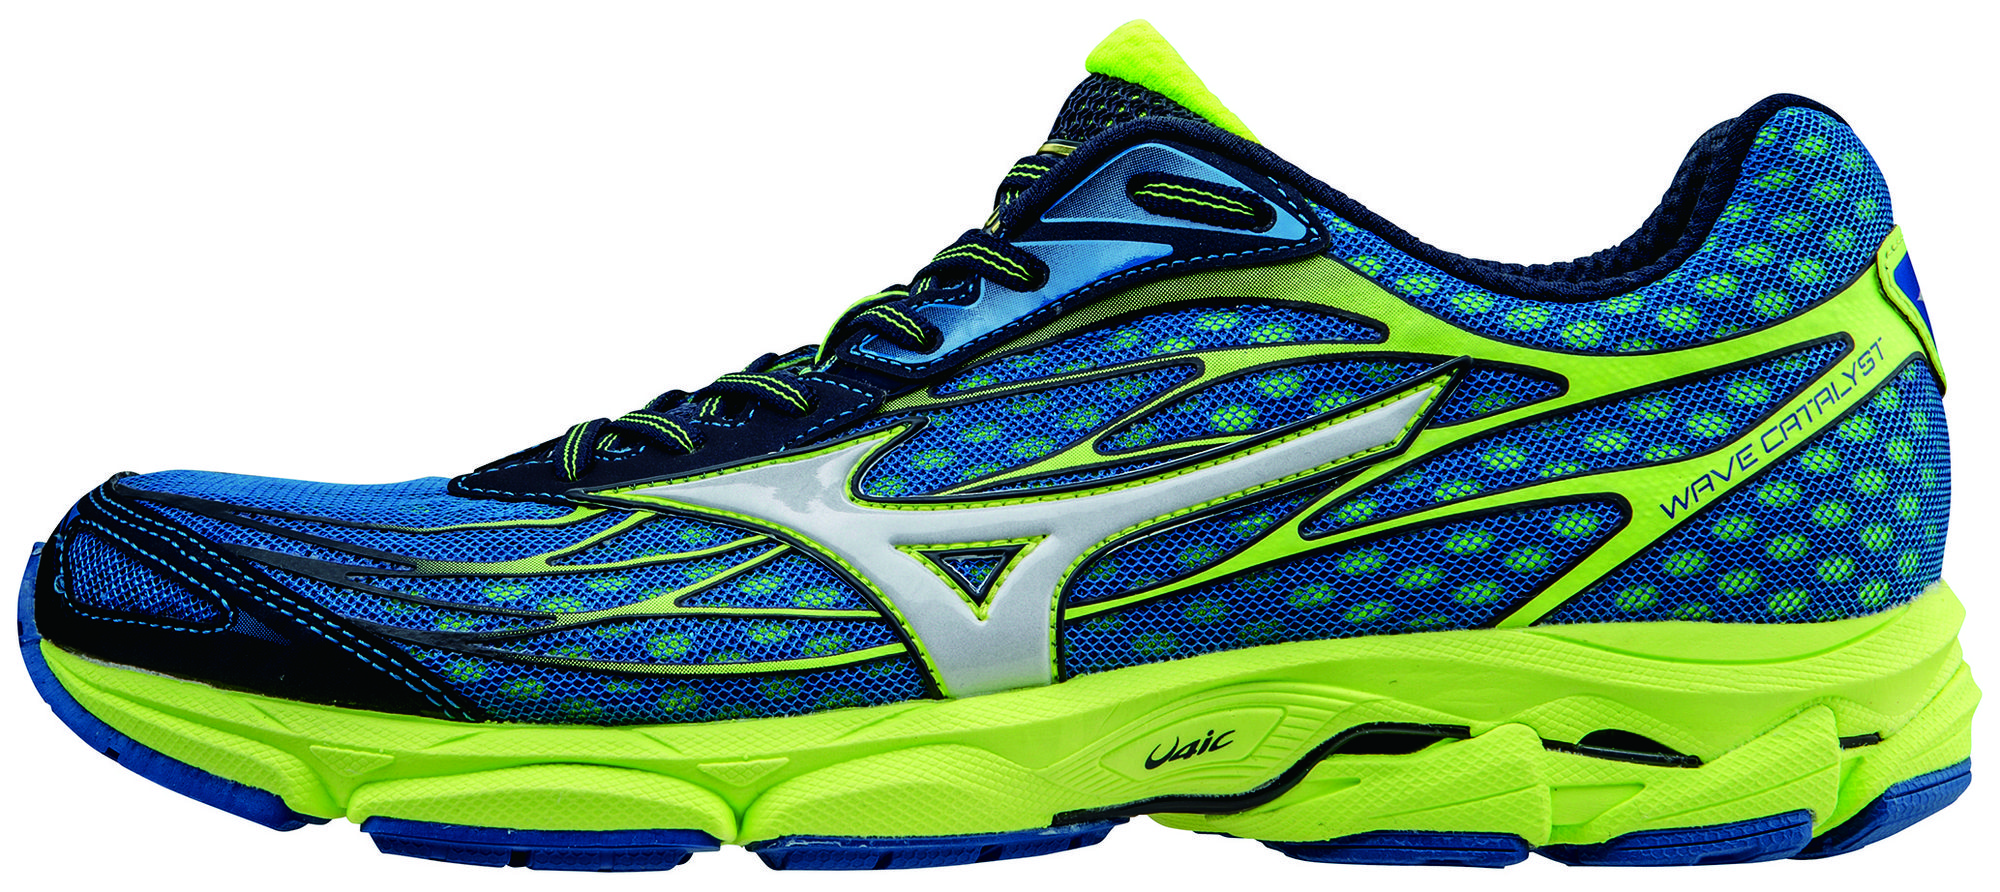 Mizuno Wave Catalyst in Blau Gelb